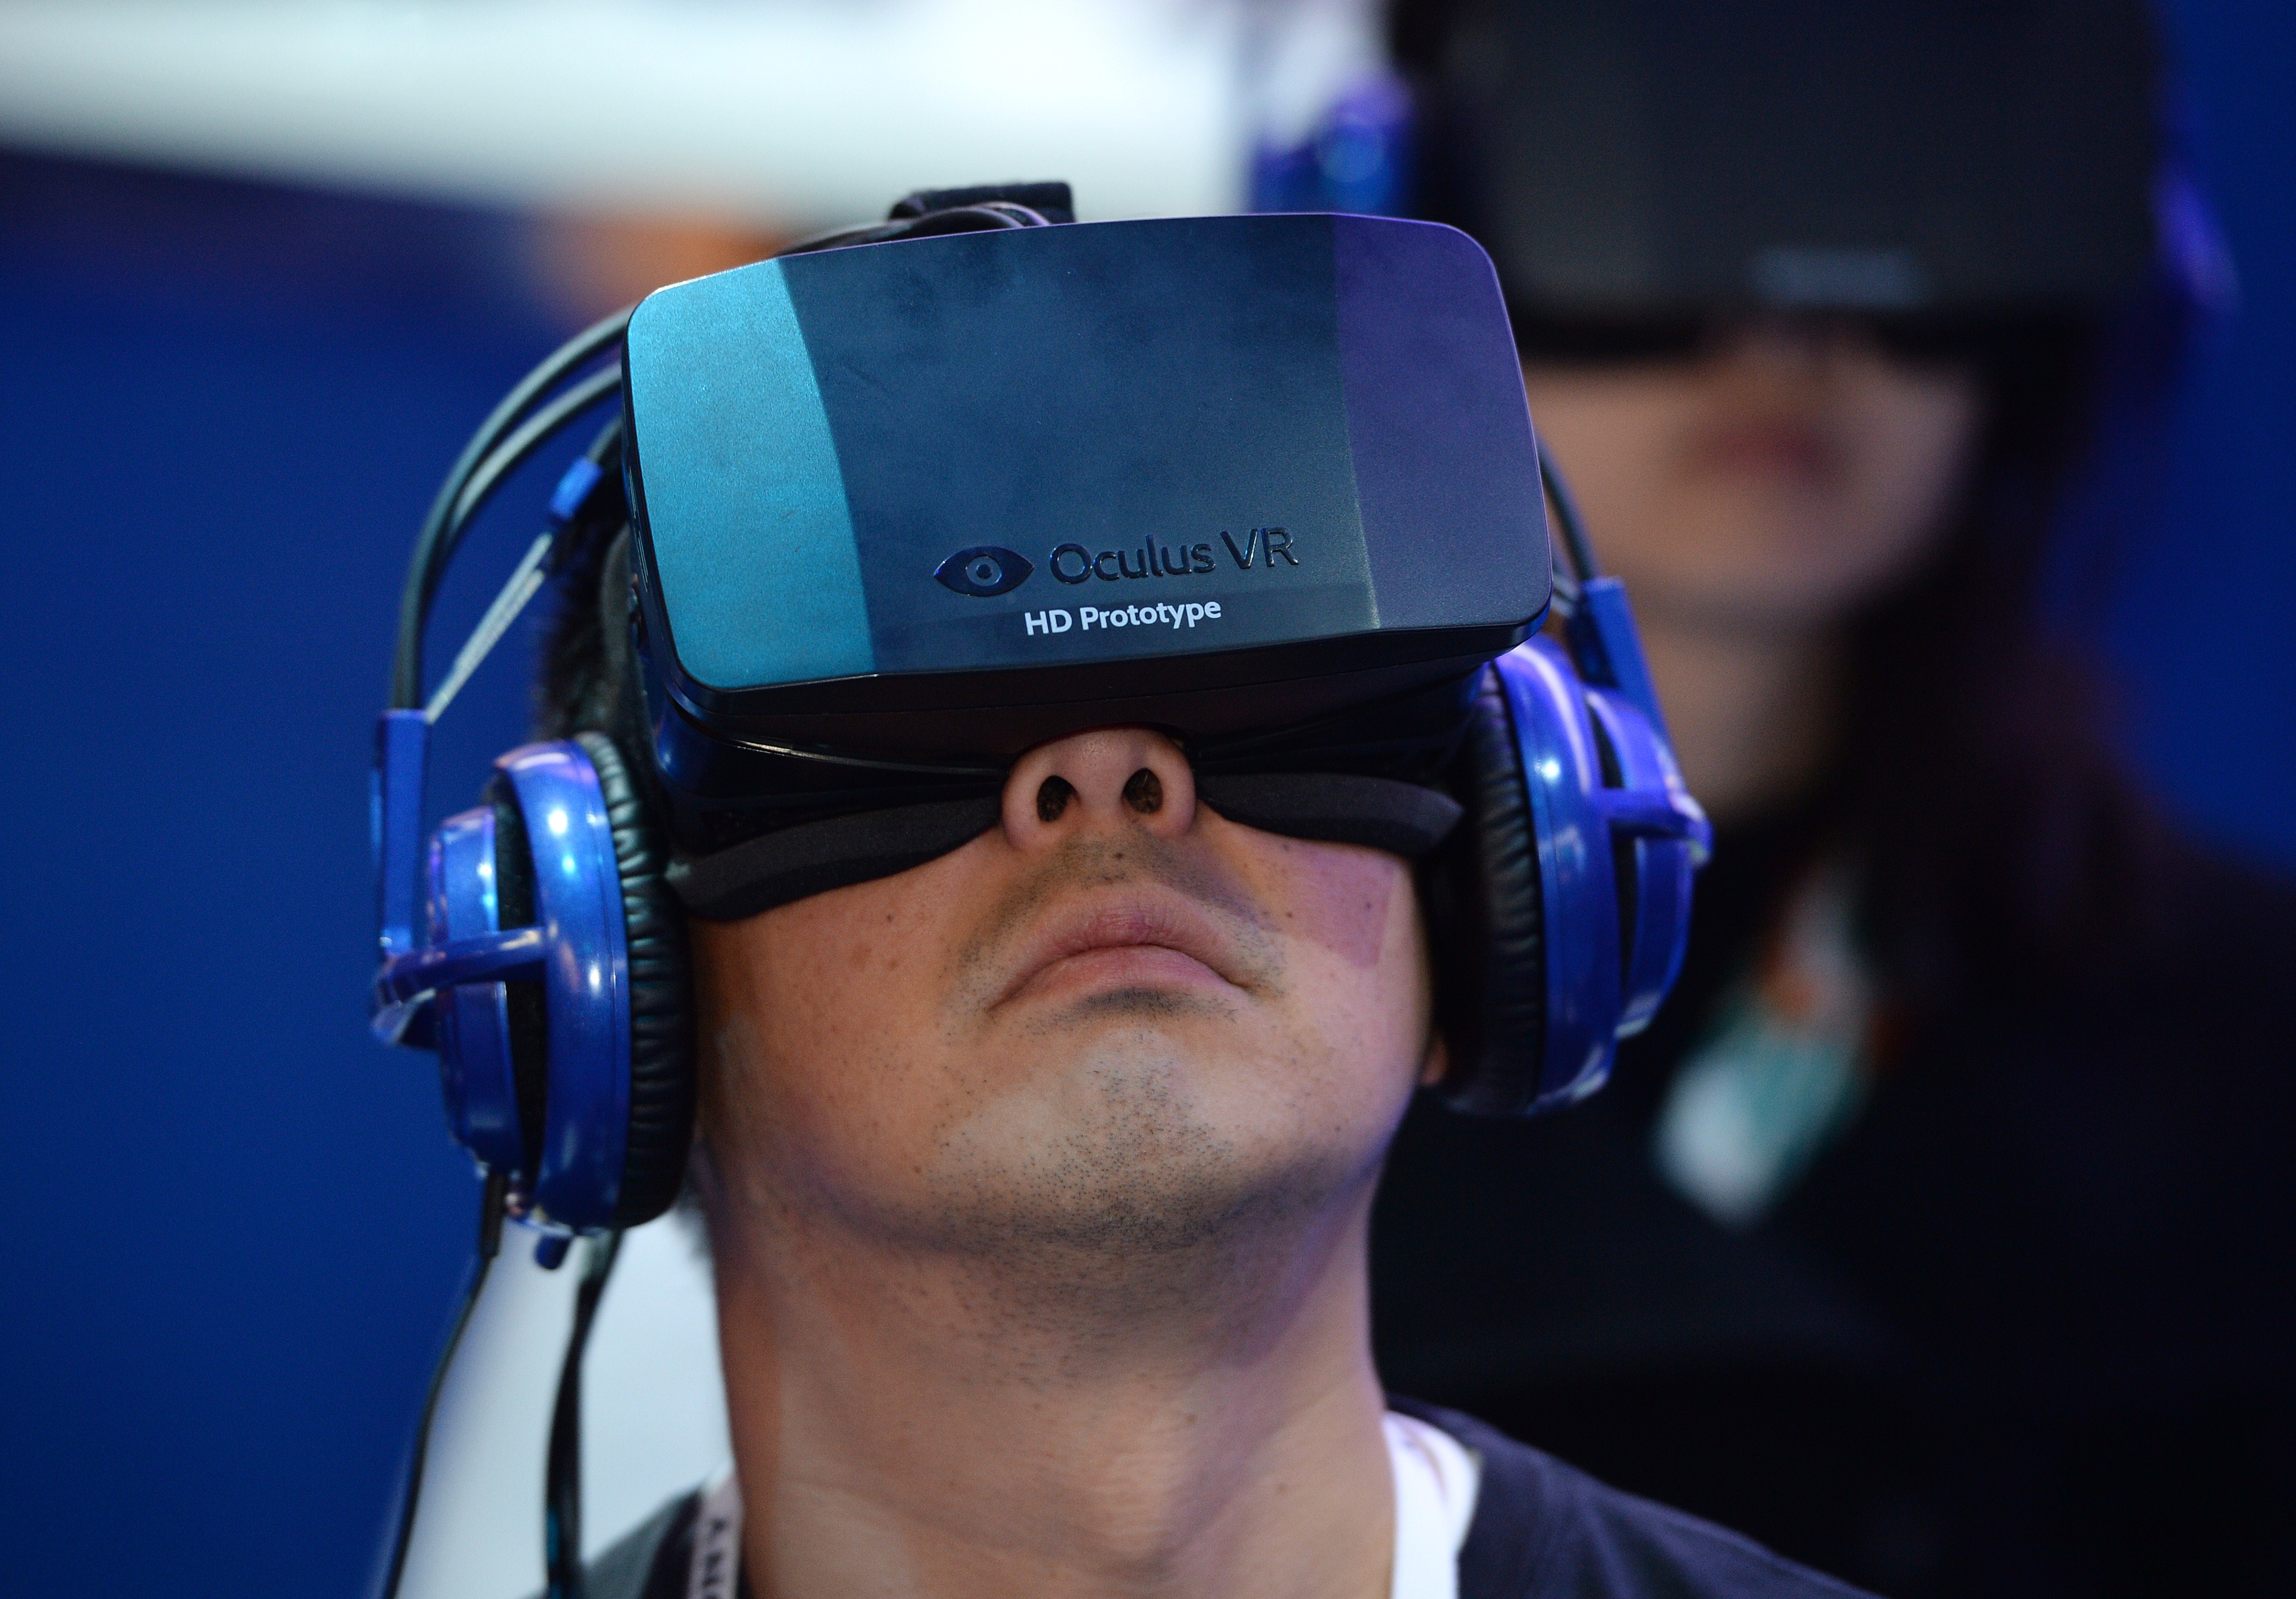 An attendee wears an Oculus Rift HD virtual reality head-mounted display at the 2014 International CES, January 9, 2014 in Las Vegas, Nevada.